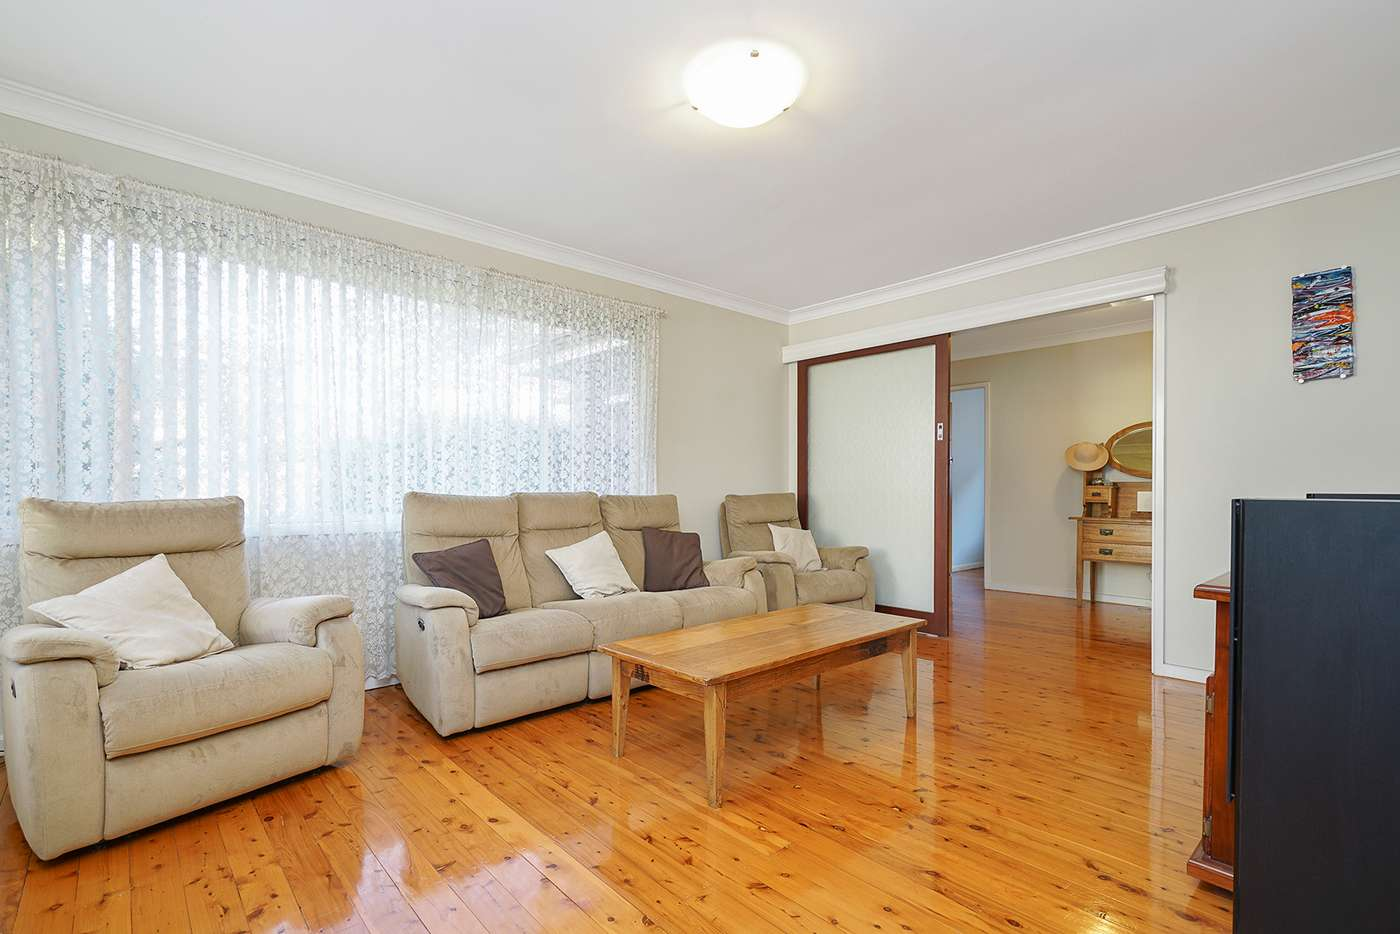 Sixth view of Homely house listing, 164 Park Avenue, Kotara NSW 2289